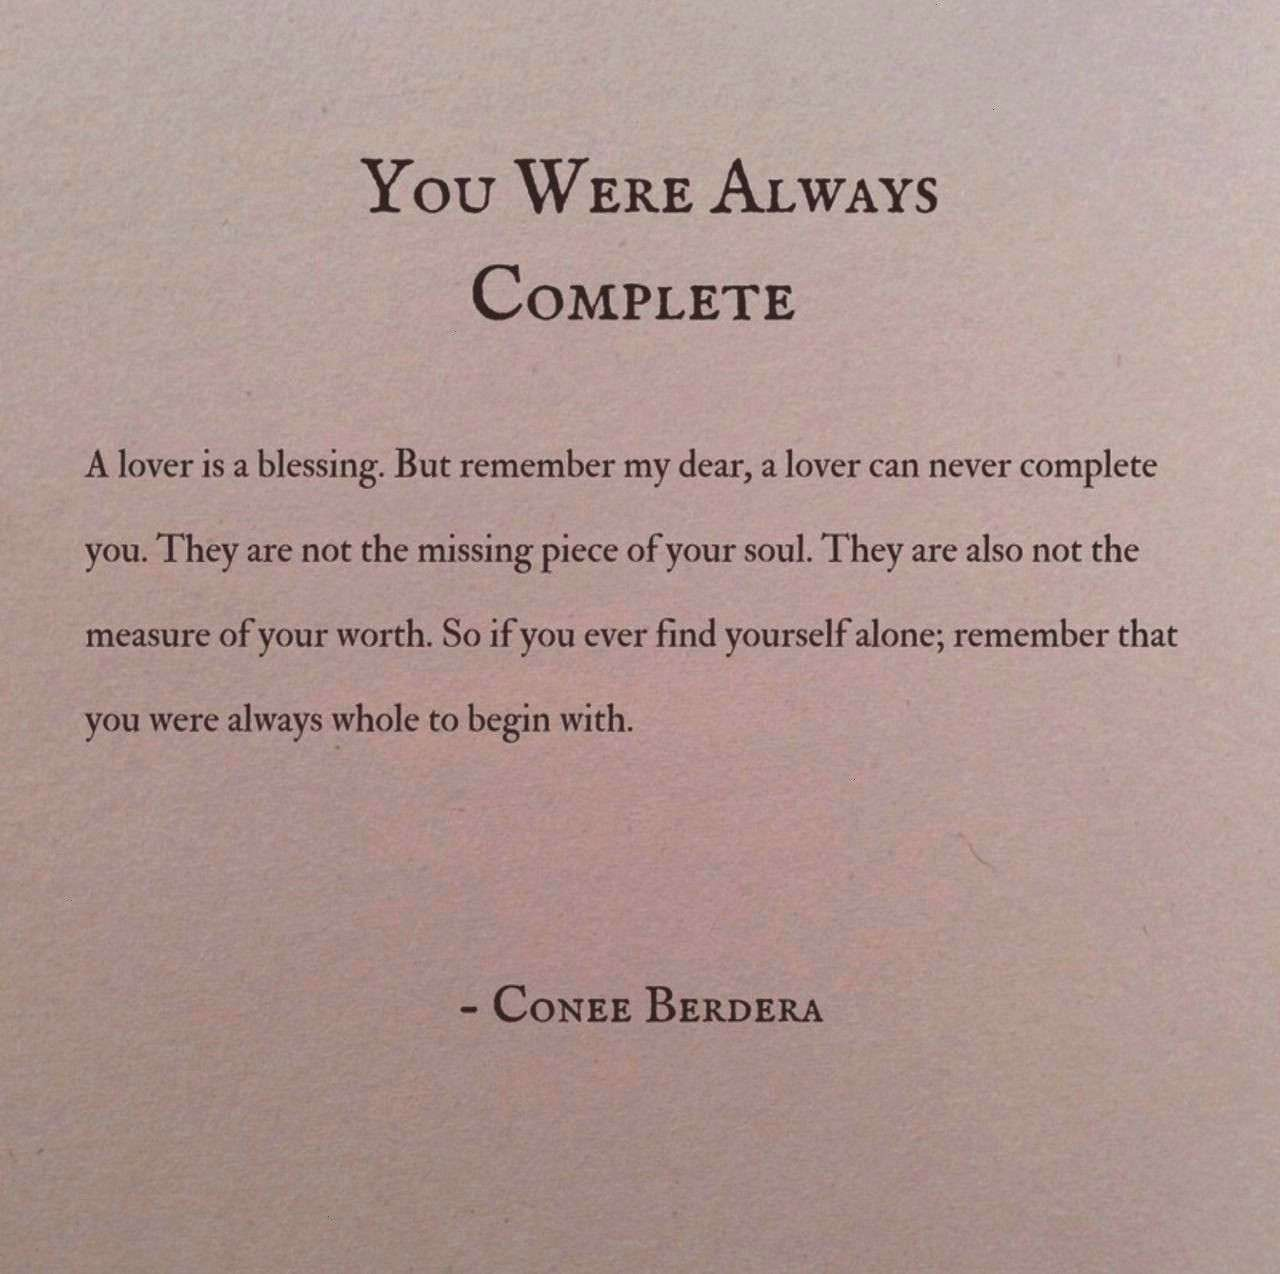 Conee Berdera -Poetry by Conee Berdera -  10 of the best letting go quotes to help you move on with